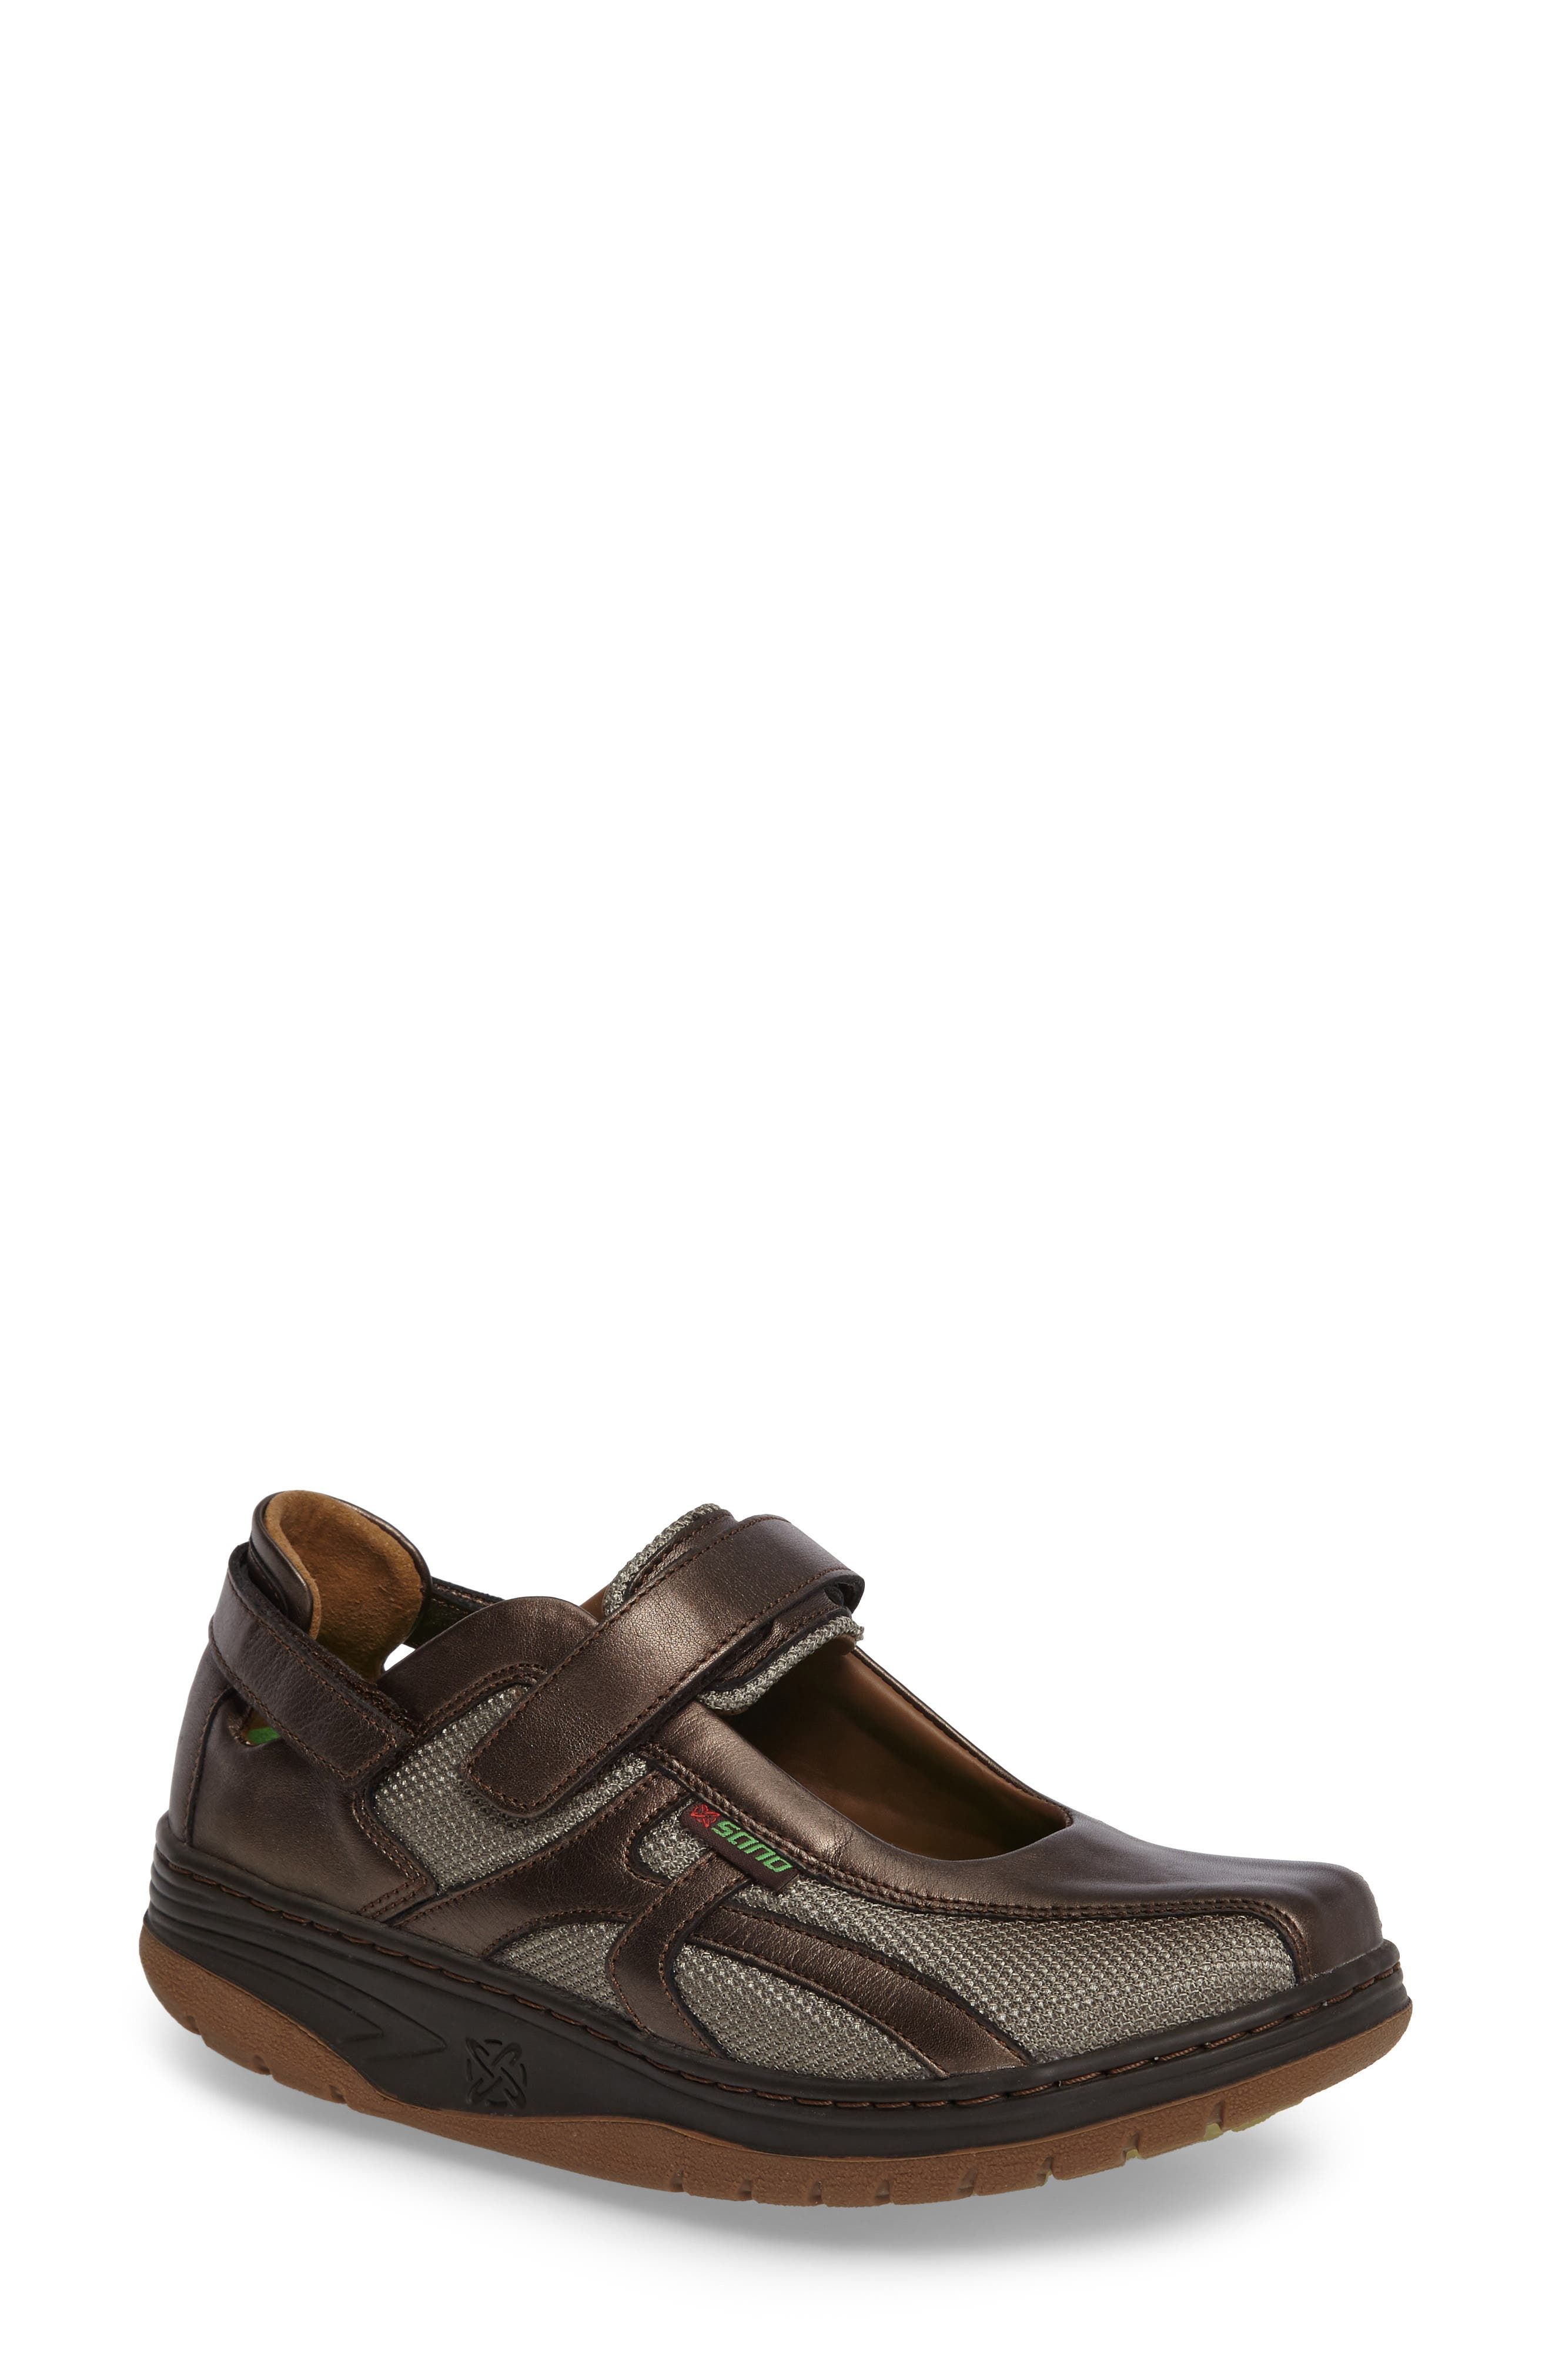 Main Image - Sano by Mephisto 'Excess' Walking Shoe (Women)